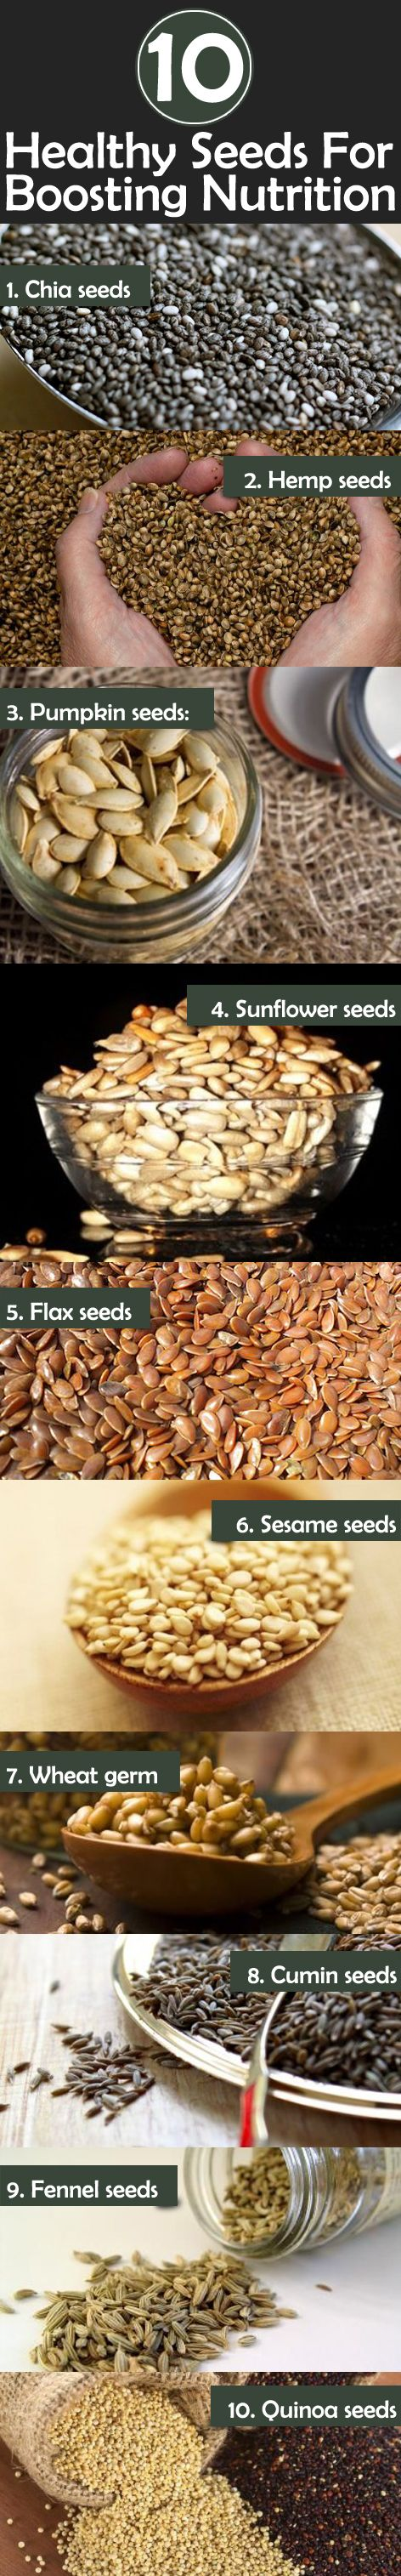 Top 10 Healthy Seeds For Boosting Nutrition